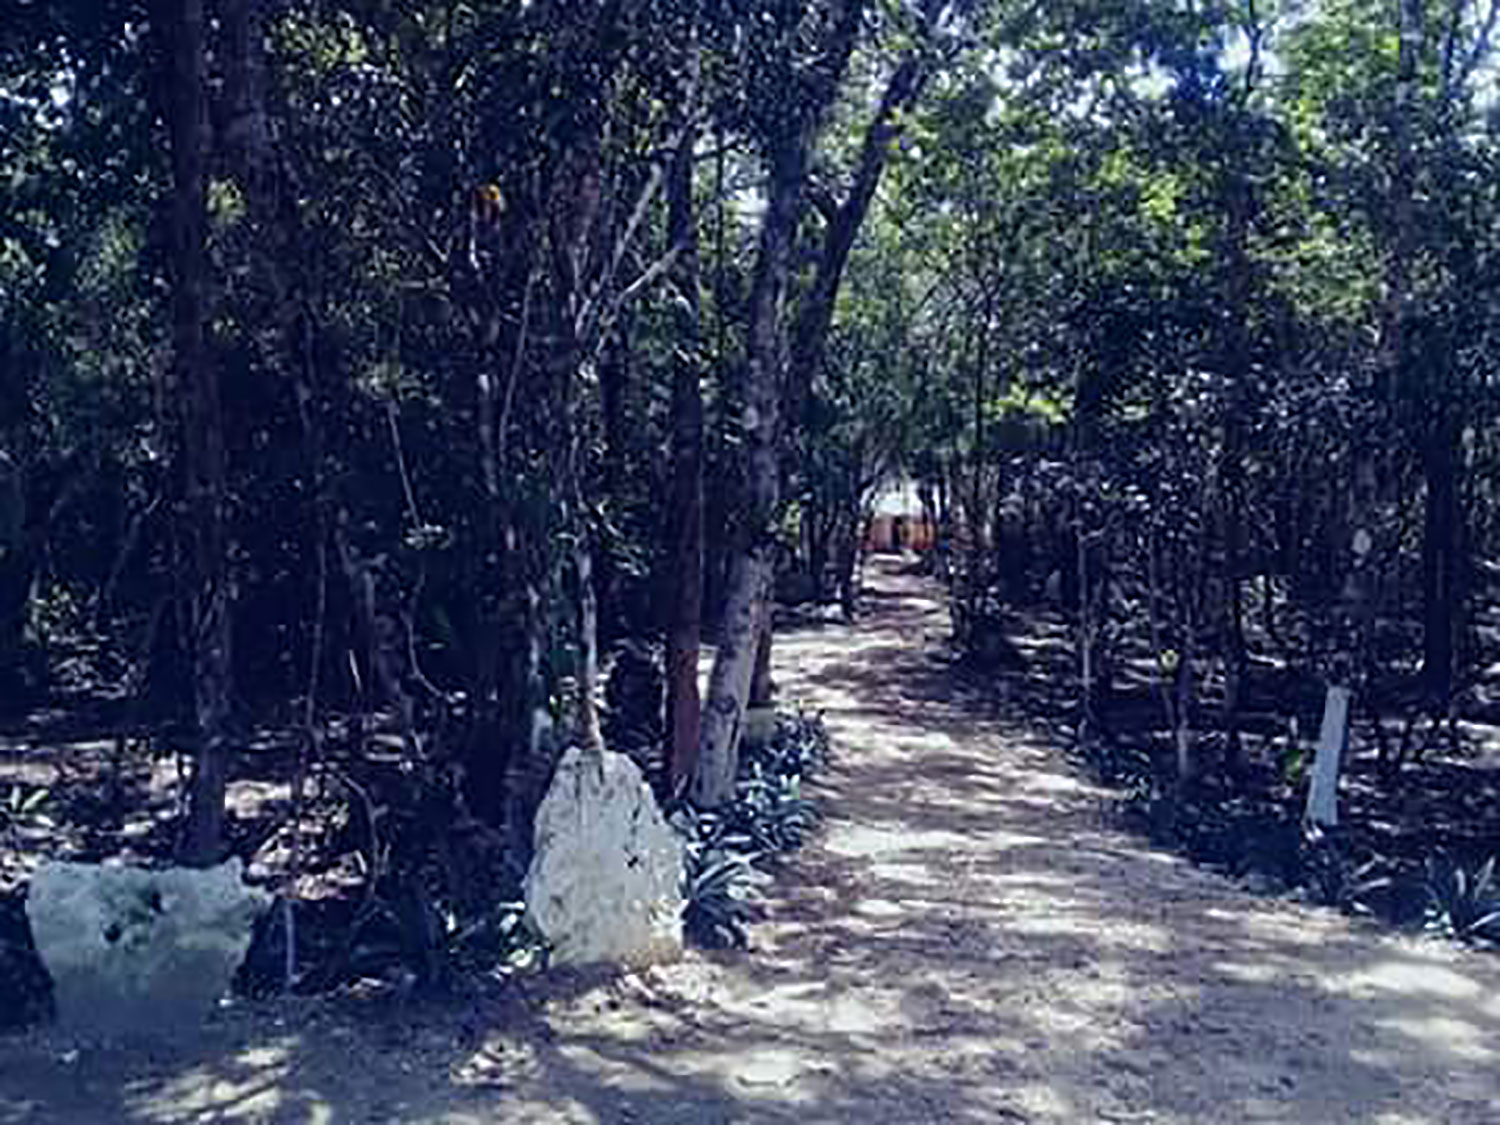 Then walk this path (for about 30m) to enter the village.